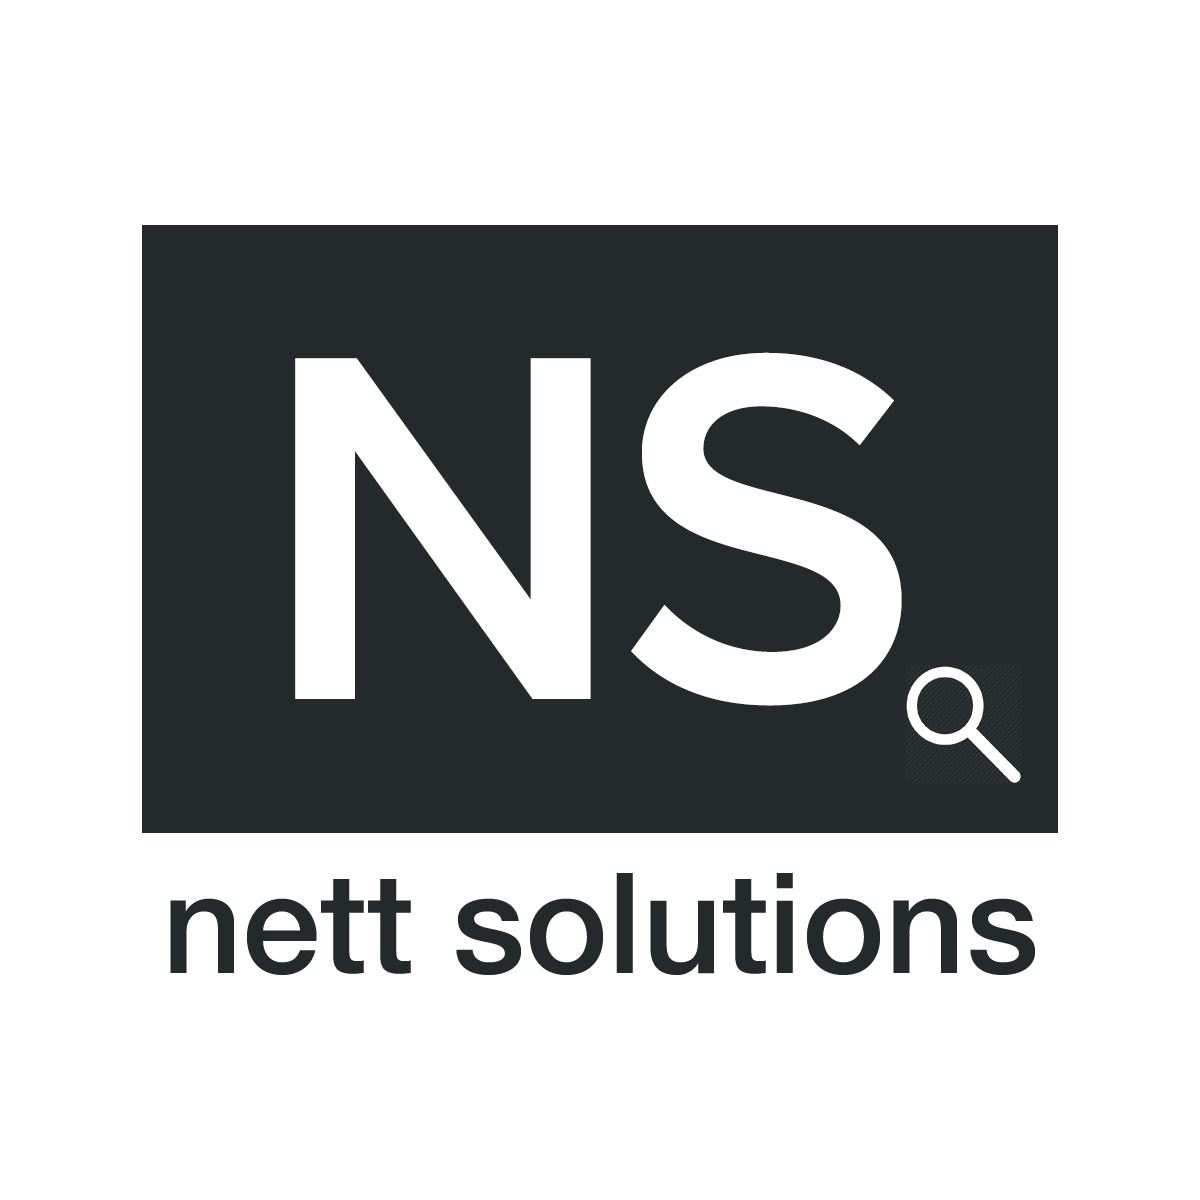 nett solutions logo black